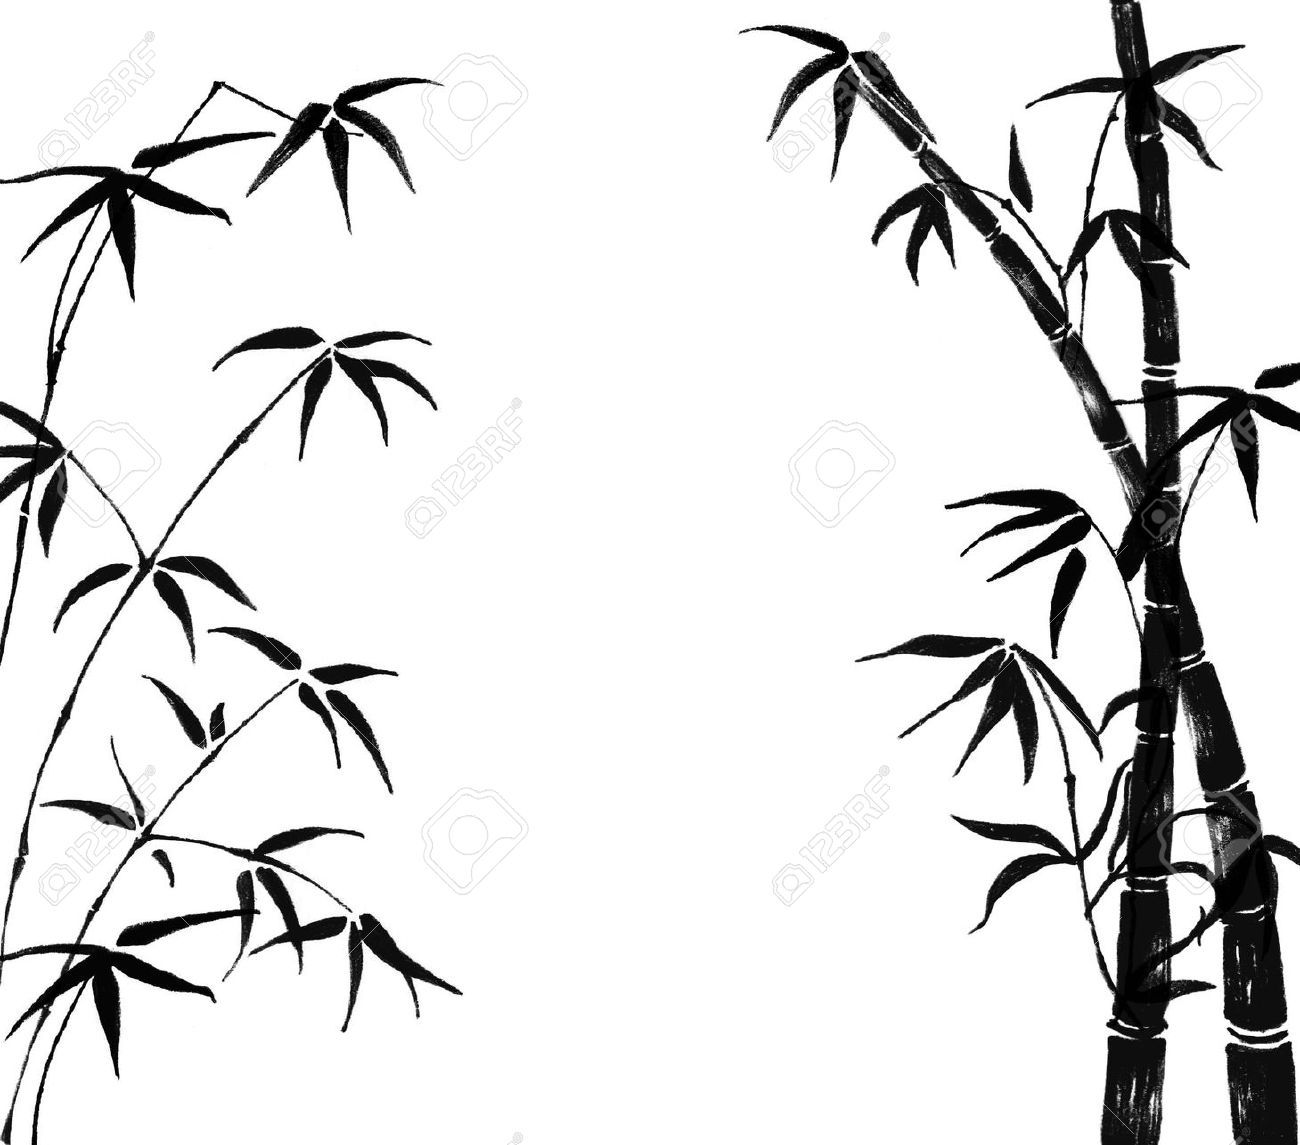 1300x1145 7313671 Silhouette Of Branches Of A Bamboo On A White Background